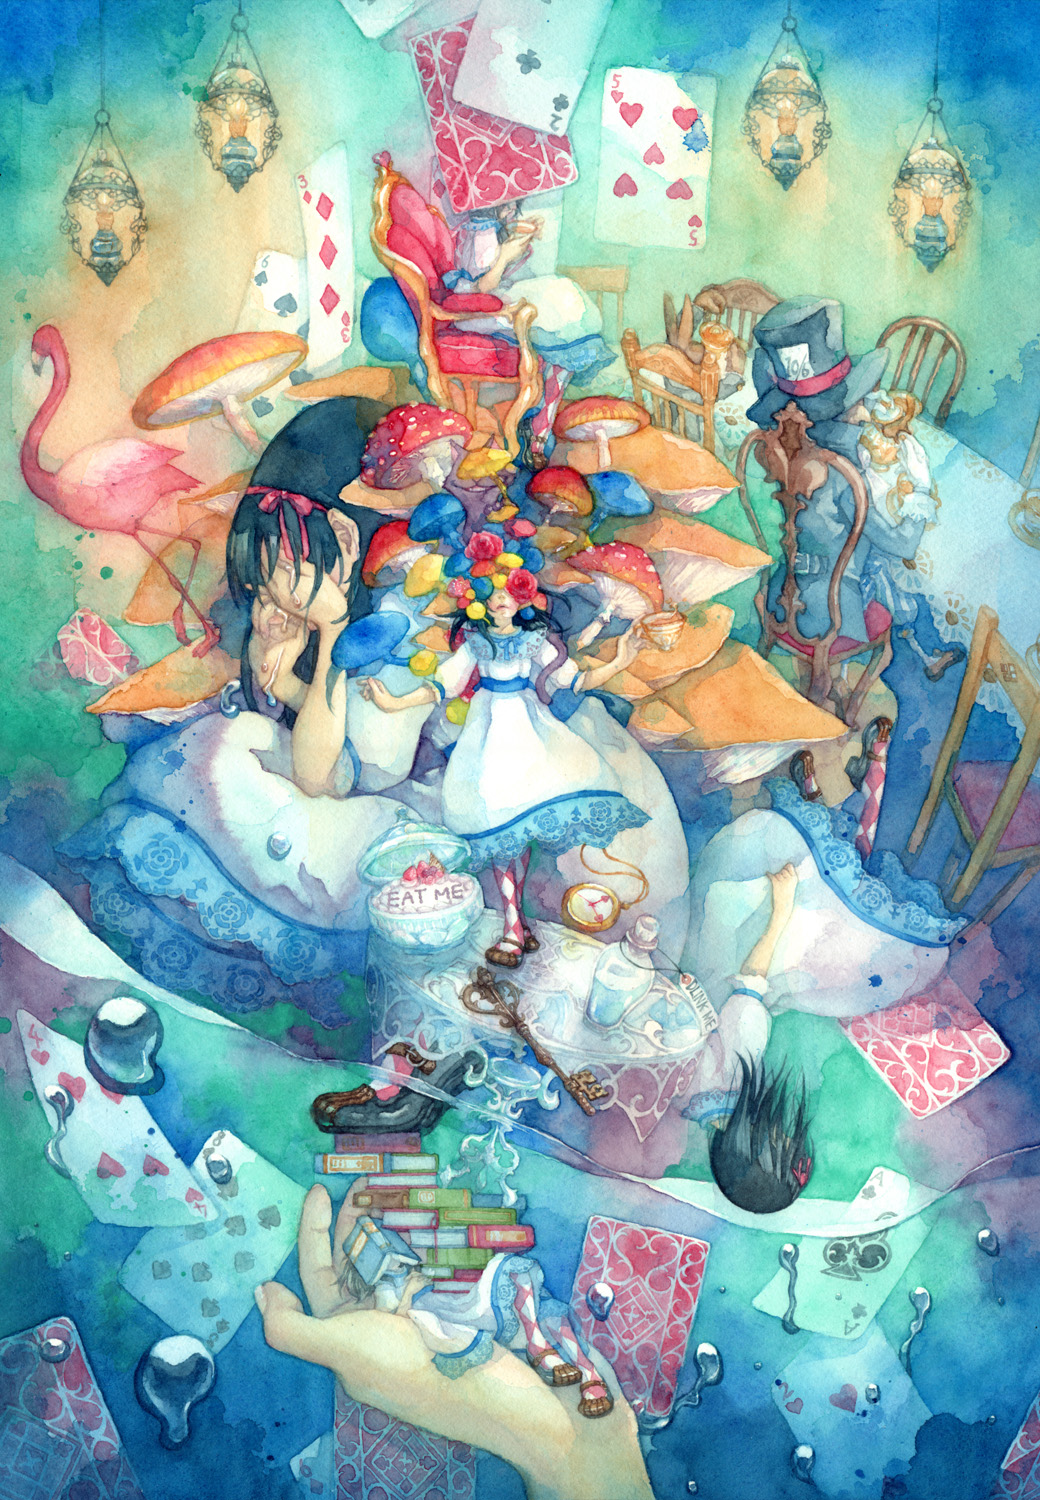 Alice in Wonderland Mobile Wallpaper #736402 - Zerochan ...